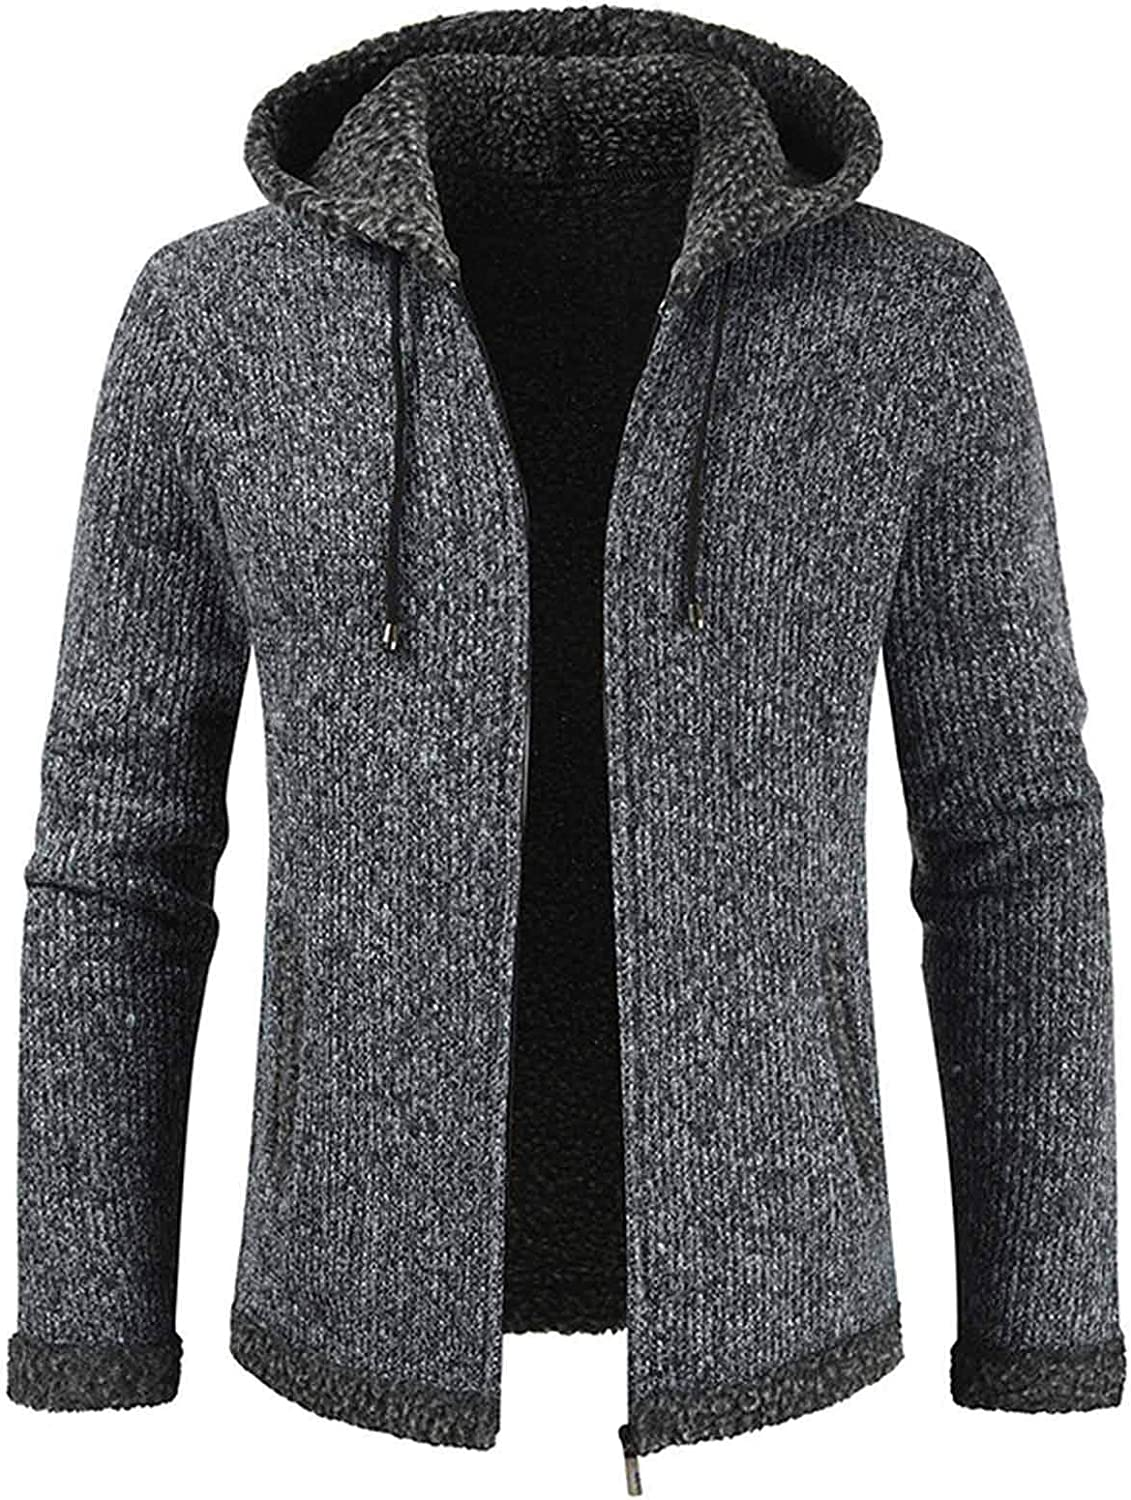 WUAI-Men Full Zip Hooded Cardigan Sweater Casual Knitted Warm Sweater Jacket with Pockets